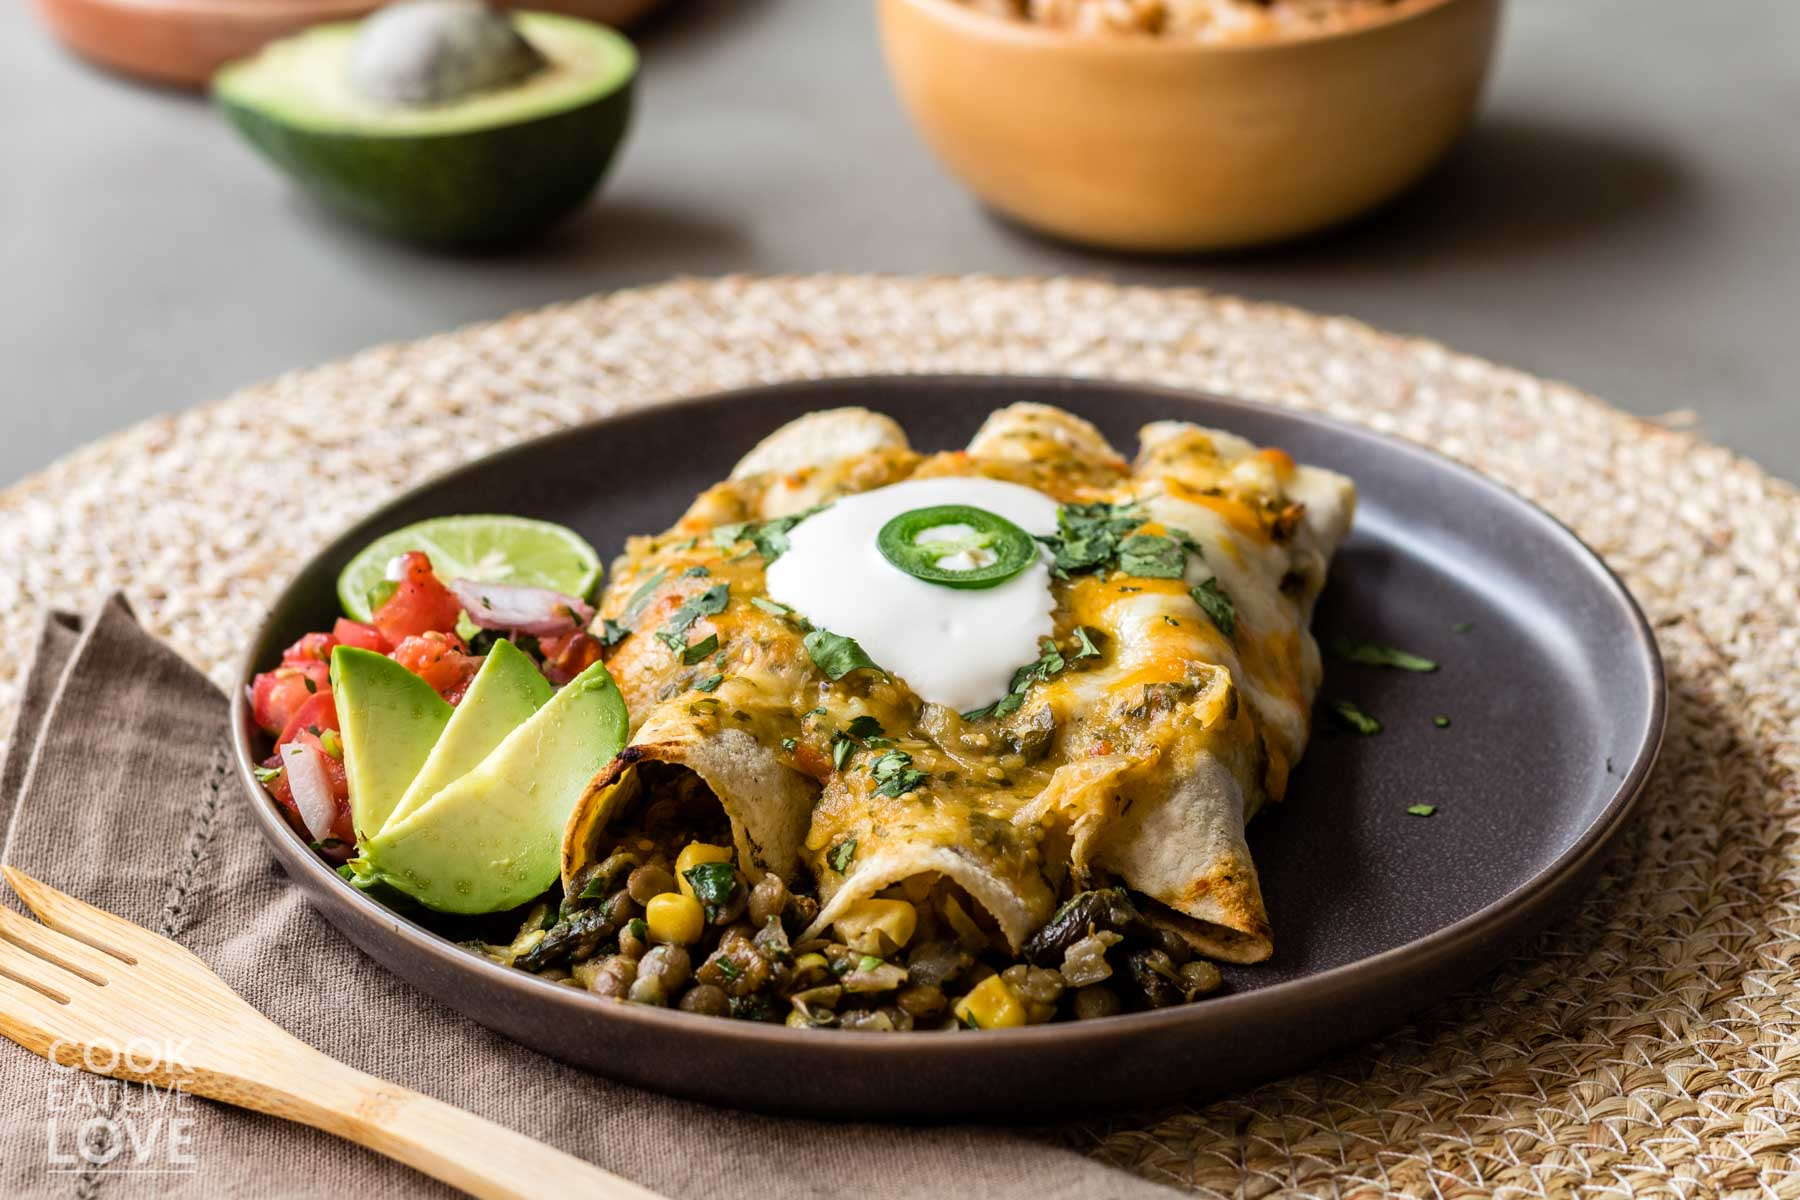 Three vegetarian green enchiladas on a plate with sour cream and a slice of jalapeno